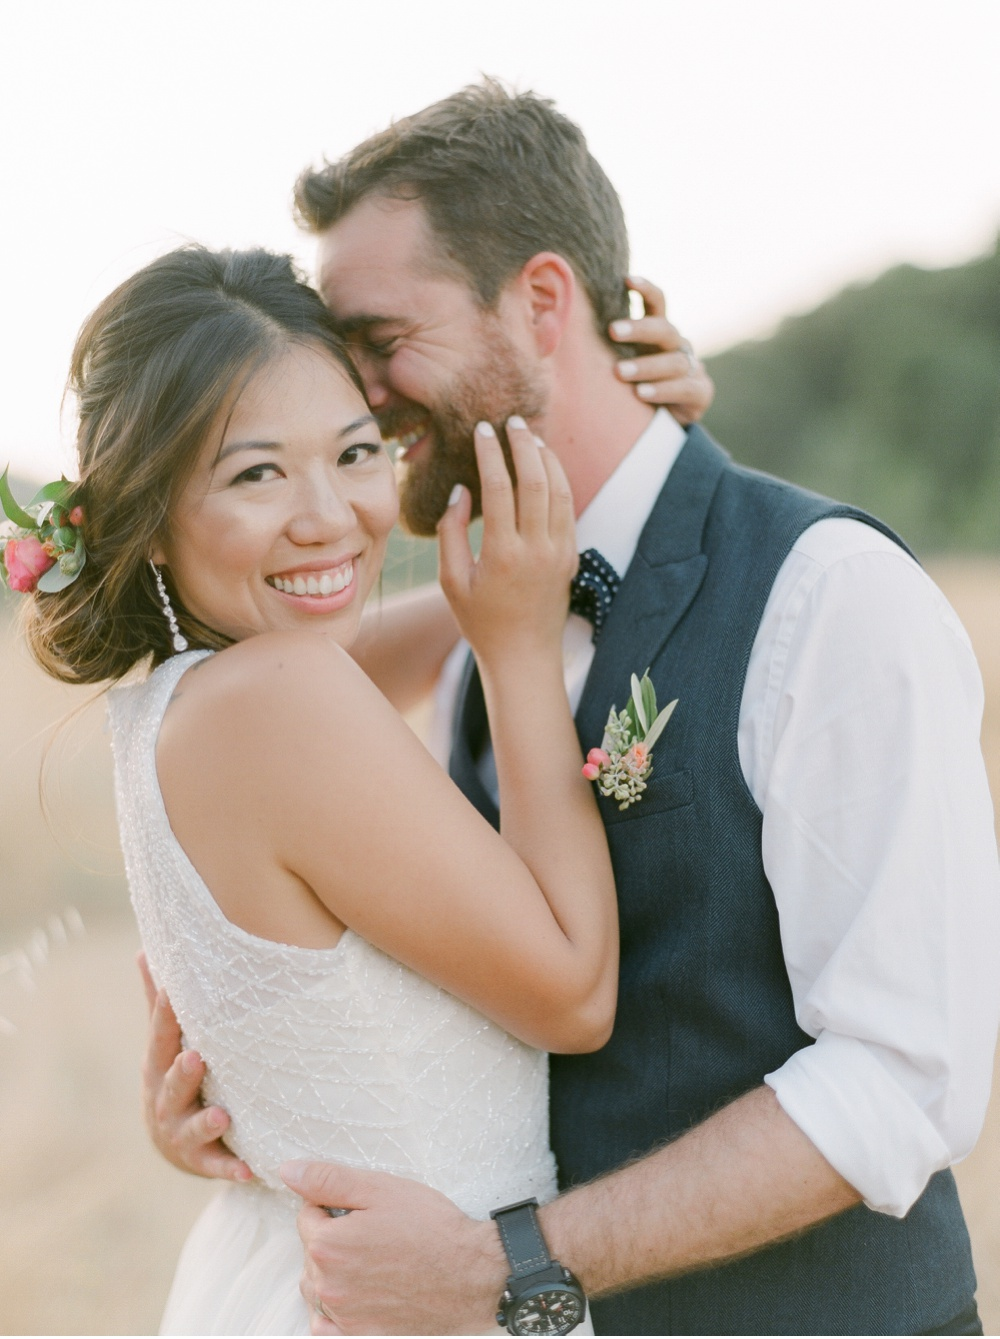 Napa_Valley_Wedding_Photographer©MadalinaSheldon_0043.jpg